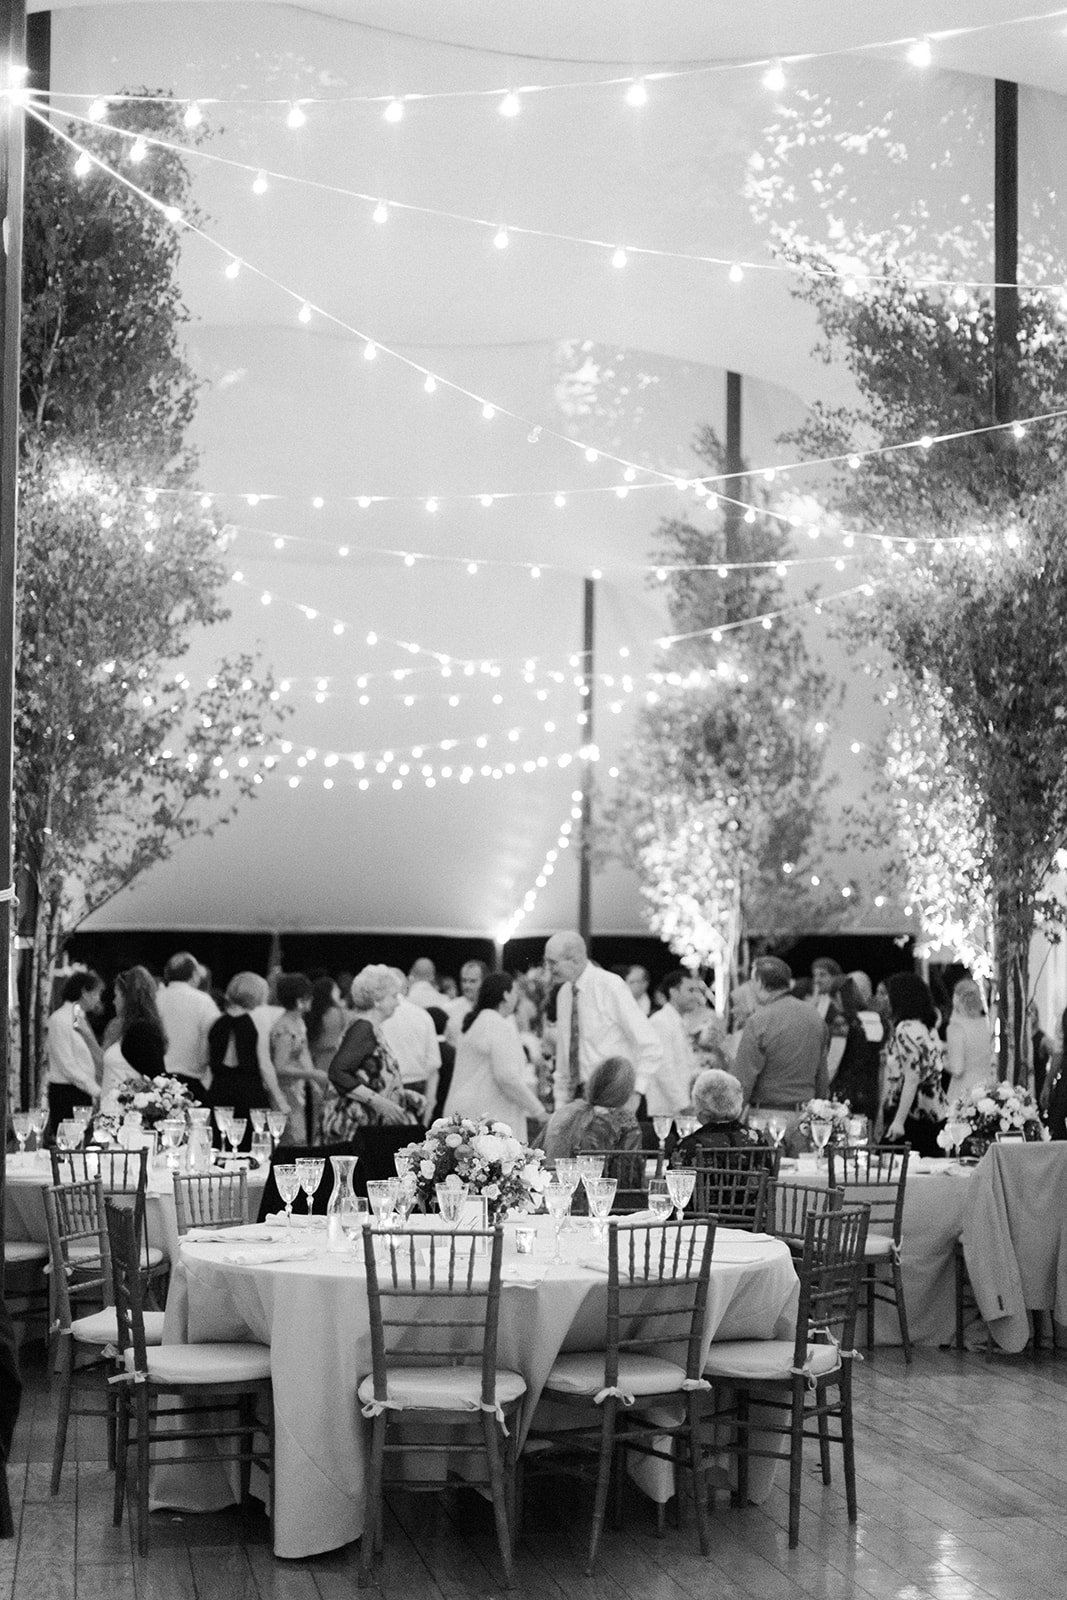 Alica-Daw-Photography-Monica-Relyea-Events-Glynwood-Farm-Cold-Spring-New-York-Hudson-Valley-Wedding-Planner-Tent-Samantha_+_Nick-137